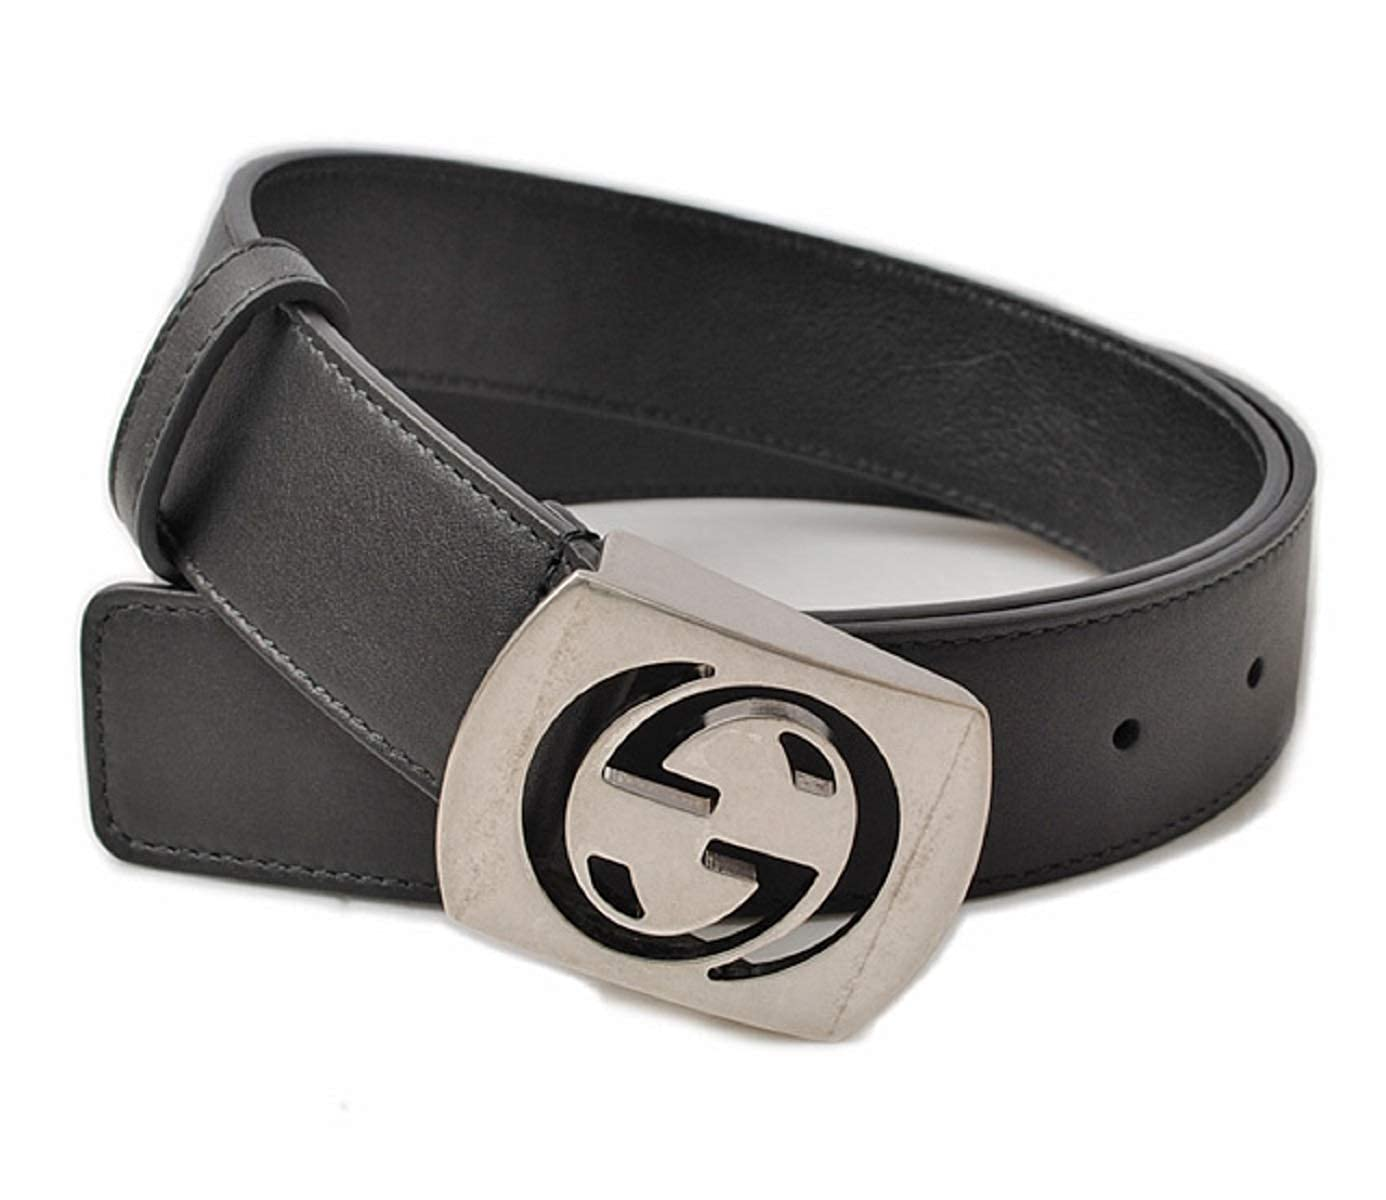 7d460d53f1b Amazon.com  Gucci Men s Cocoa Brown Leather Interlocking G Leather Belt  387031  Clothing